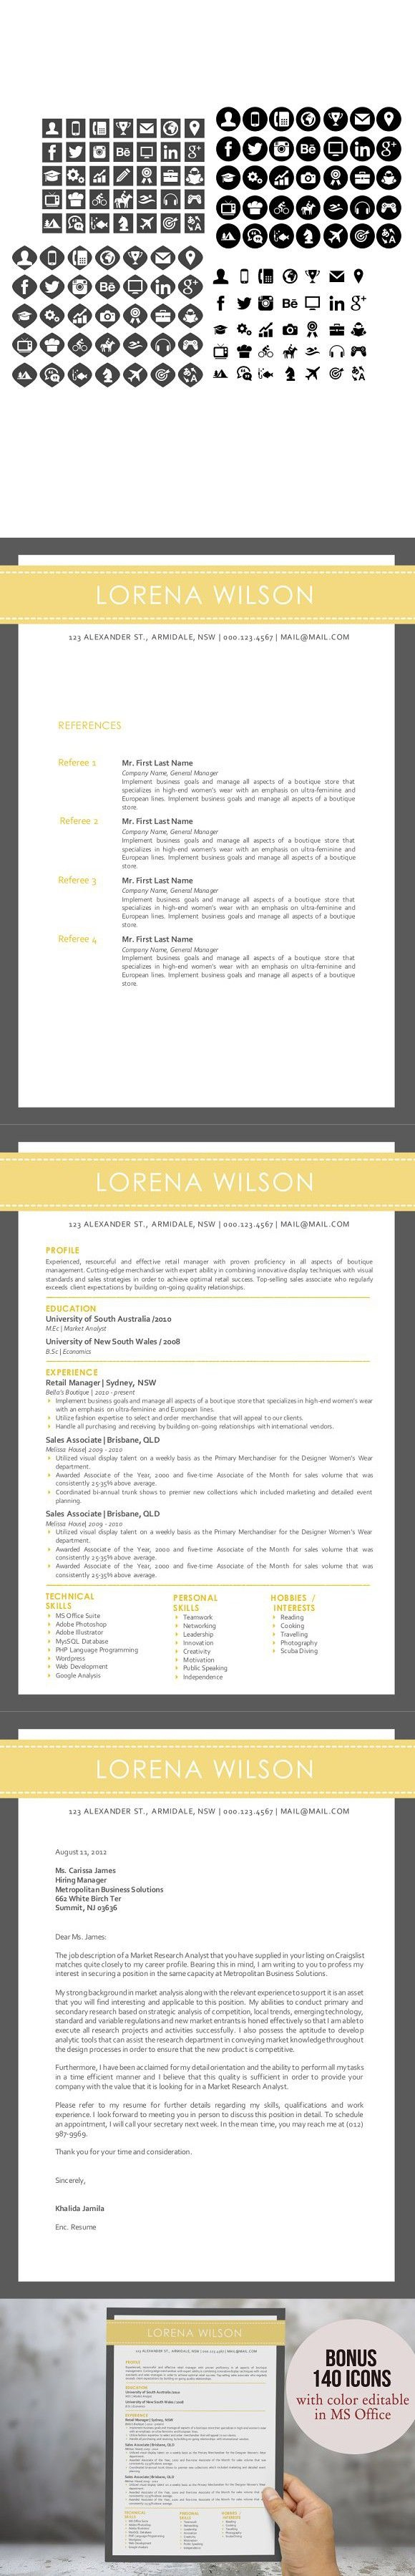 Brand Analyst Sample Resume Custom 3 In 1 Simple Banner Word Resume #resumedesignformsword .